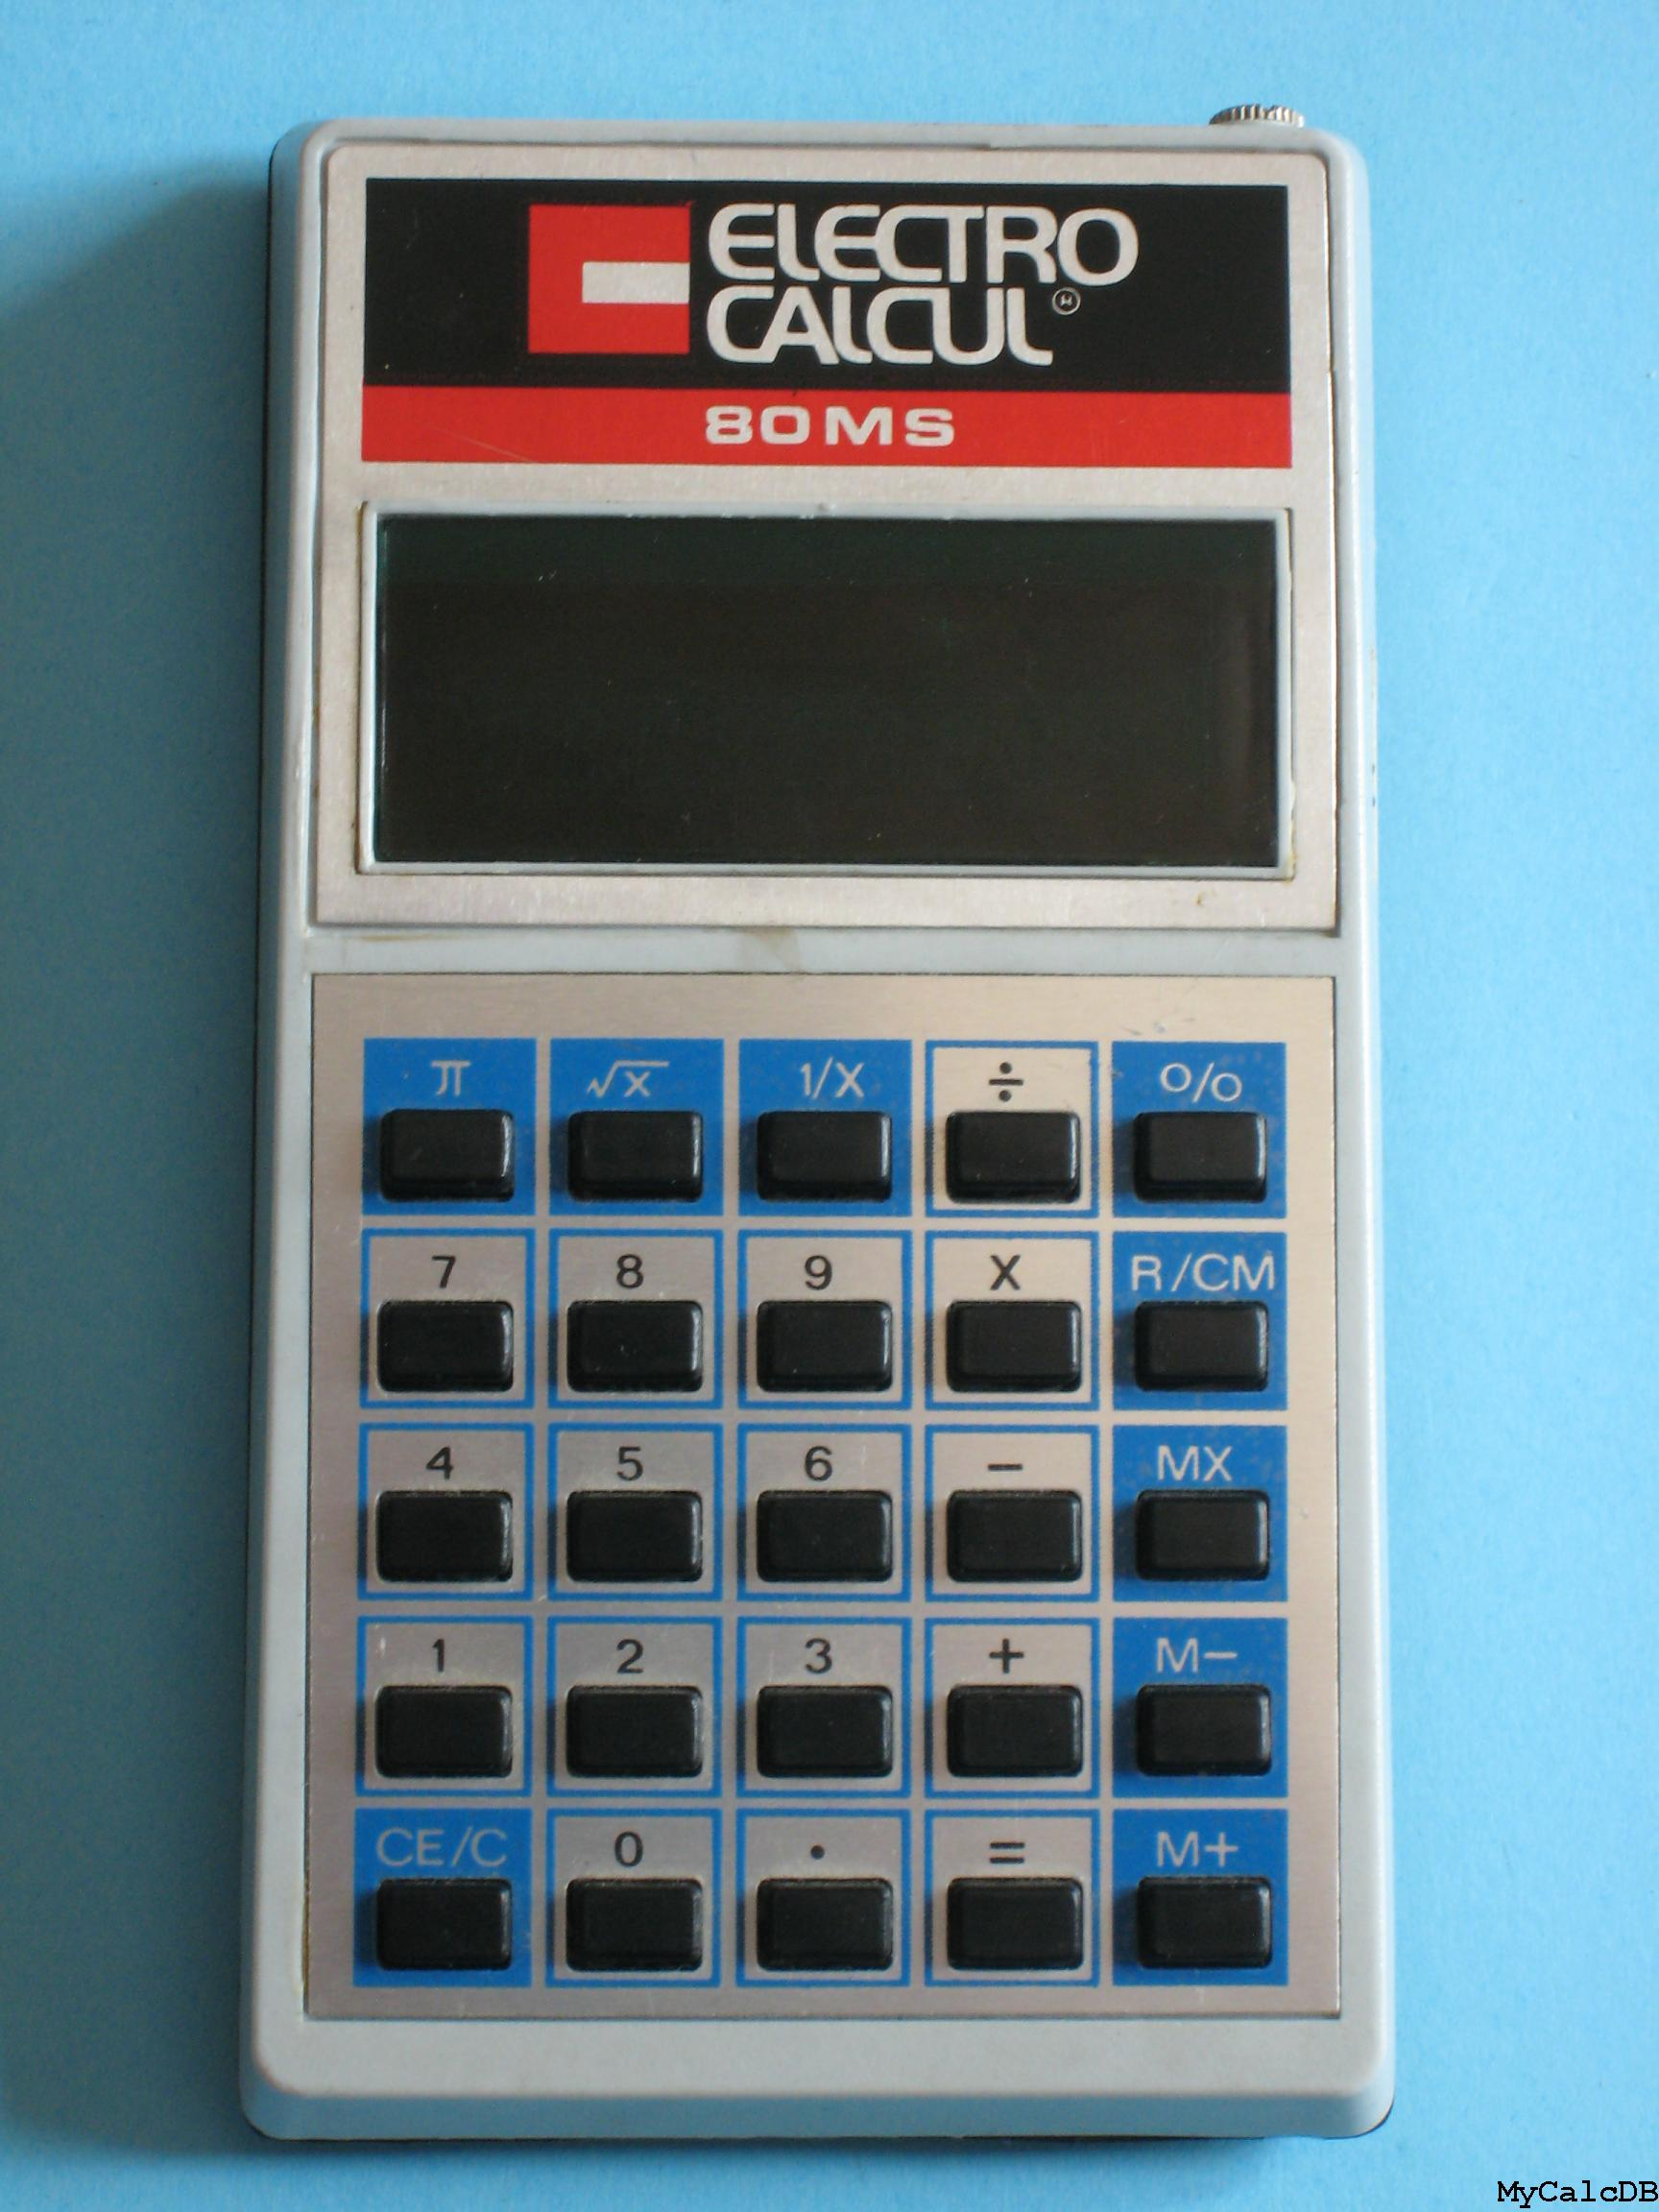 Electro Calcul 80MS